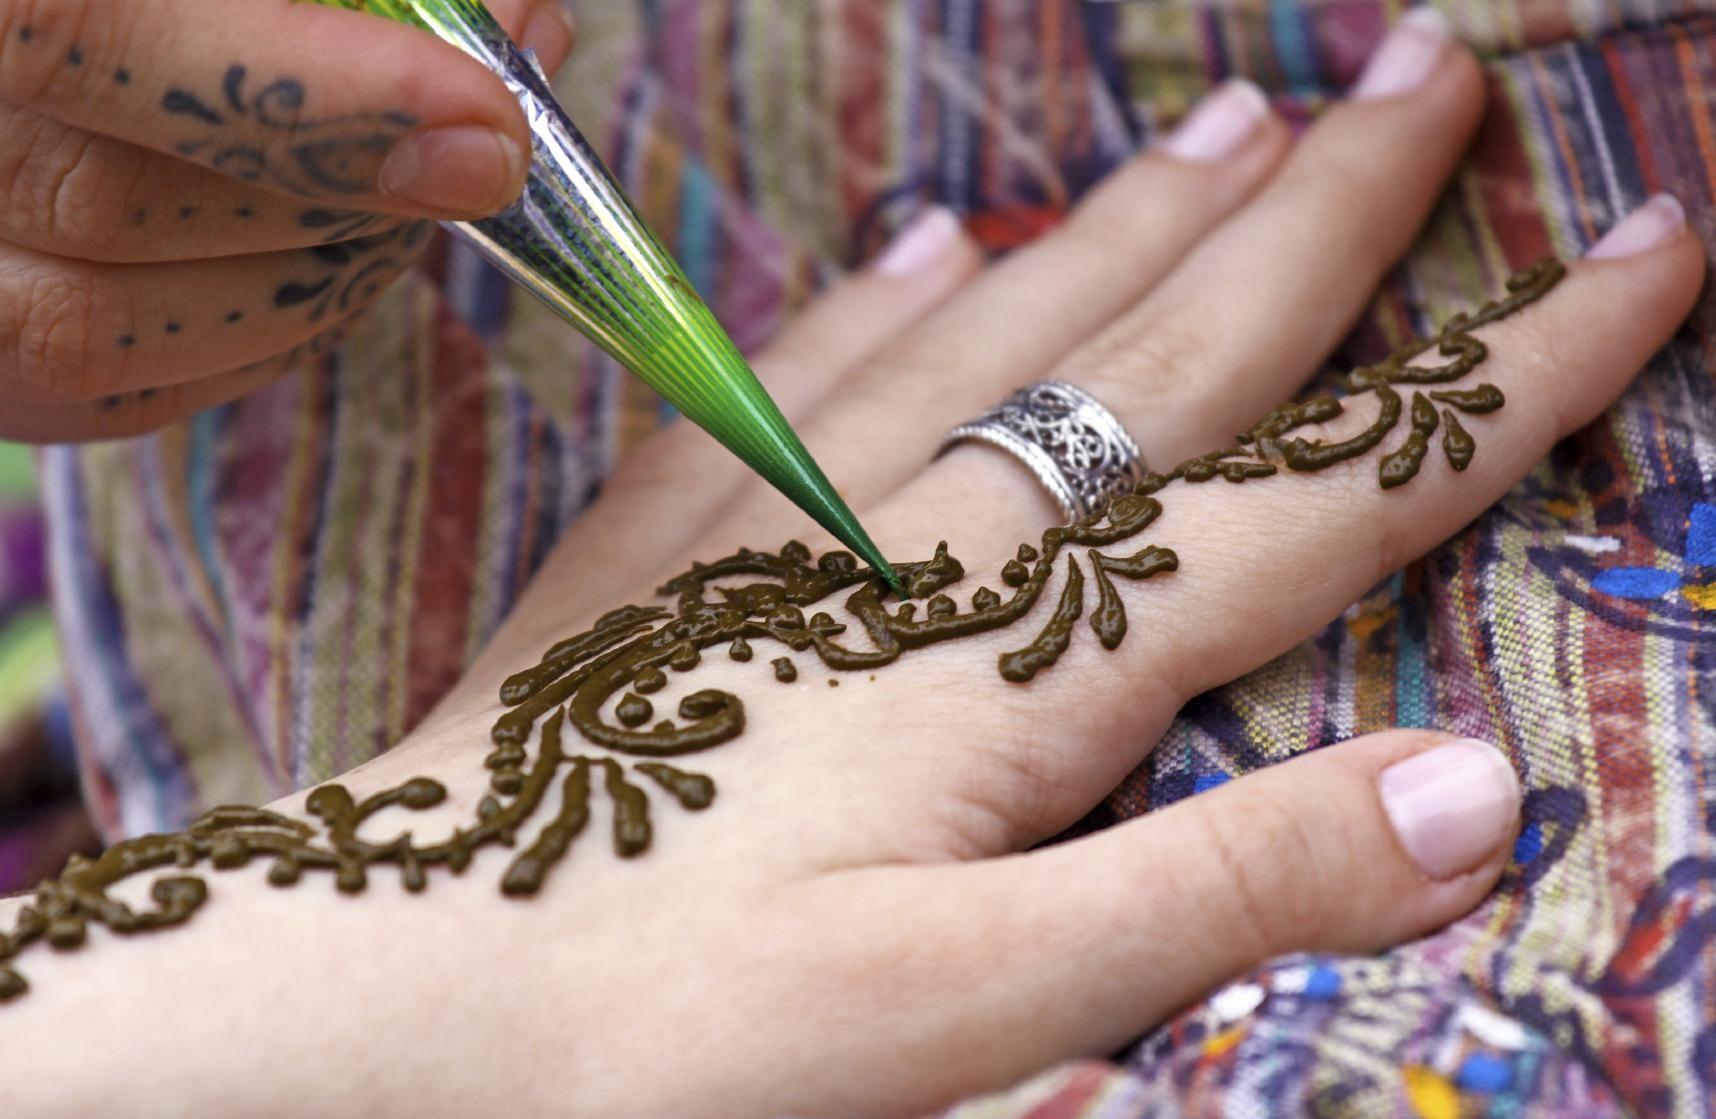 How to apply Mehndi for beginners. Mehndi is a red coloured